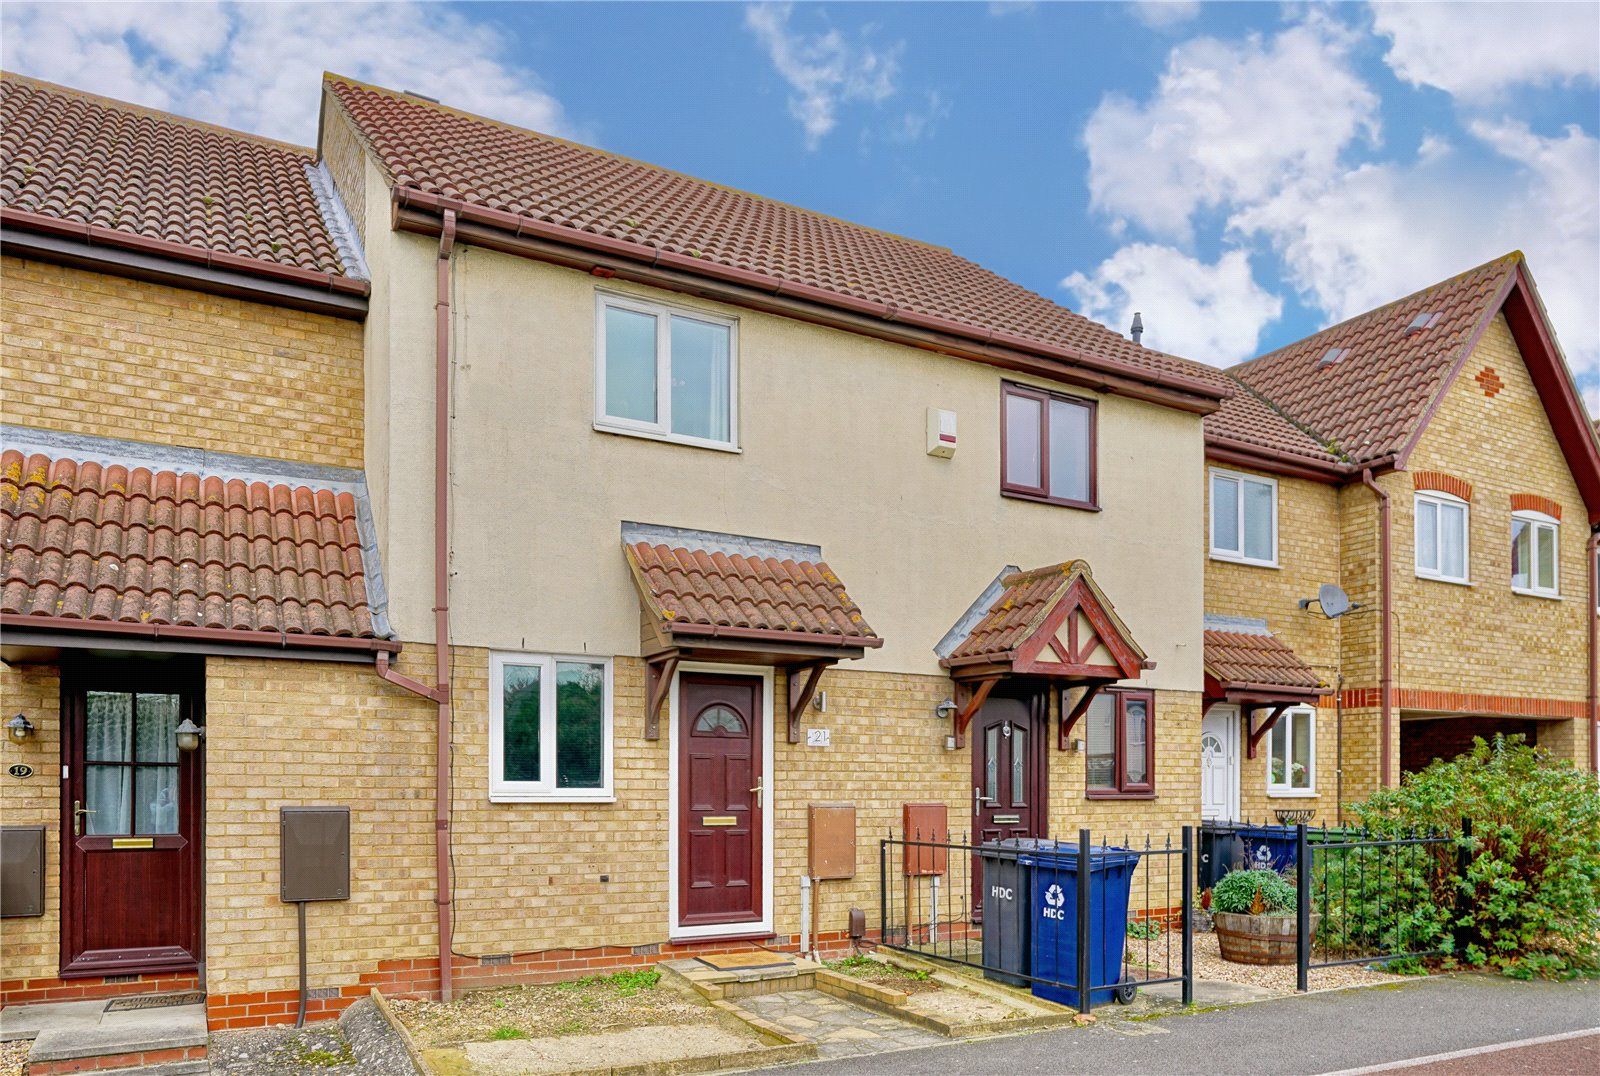 2 bed house for sale in Cromwell Court, Eynesbury, PE19